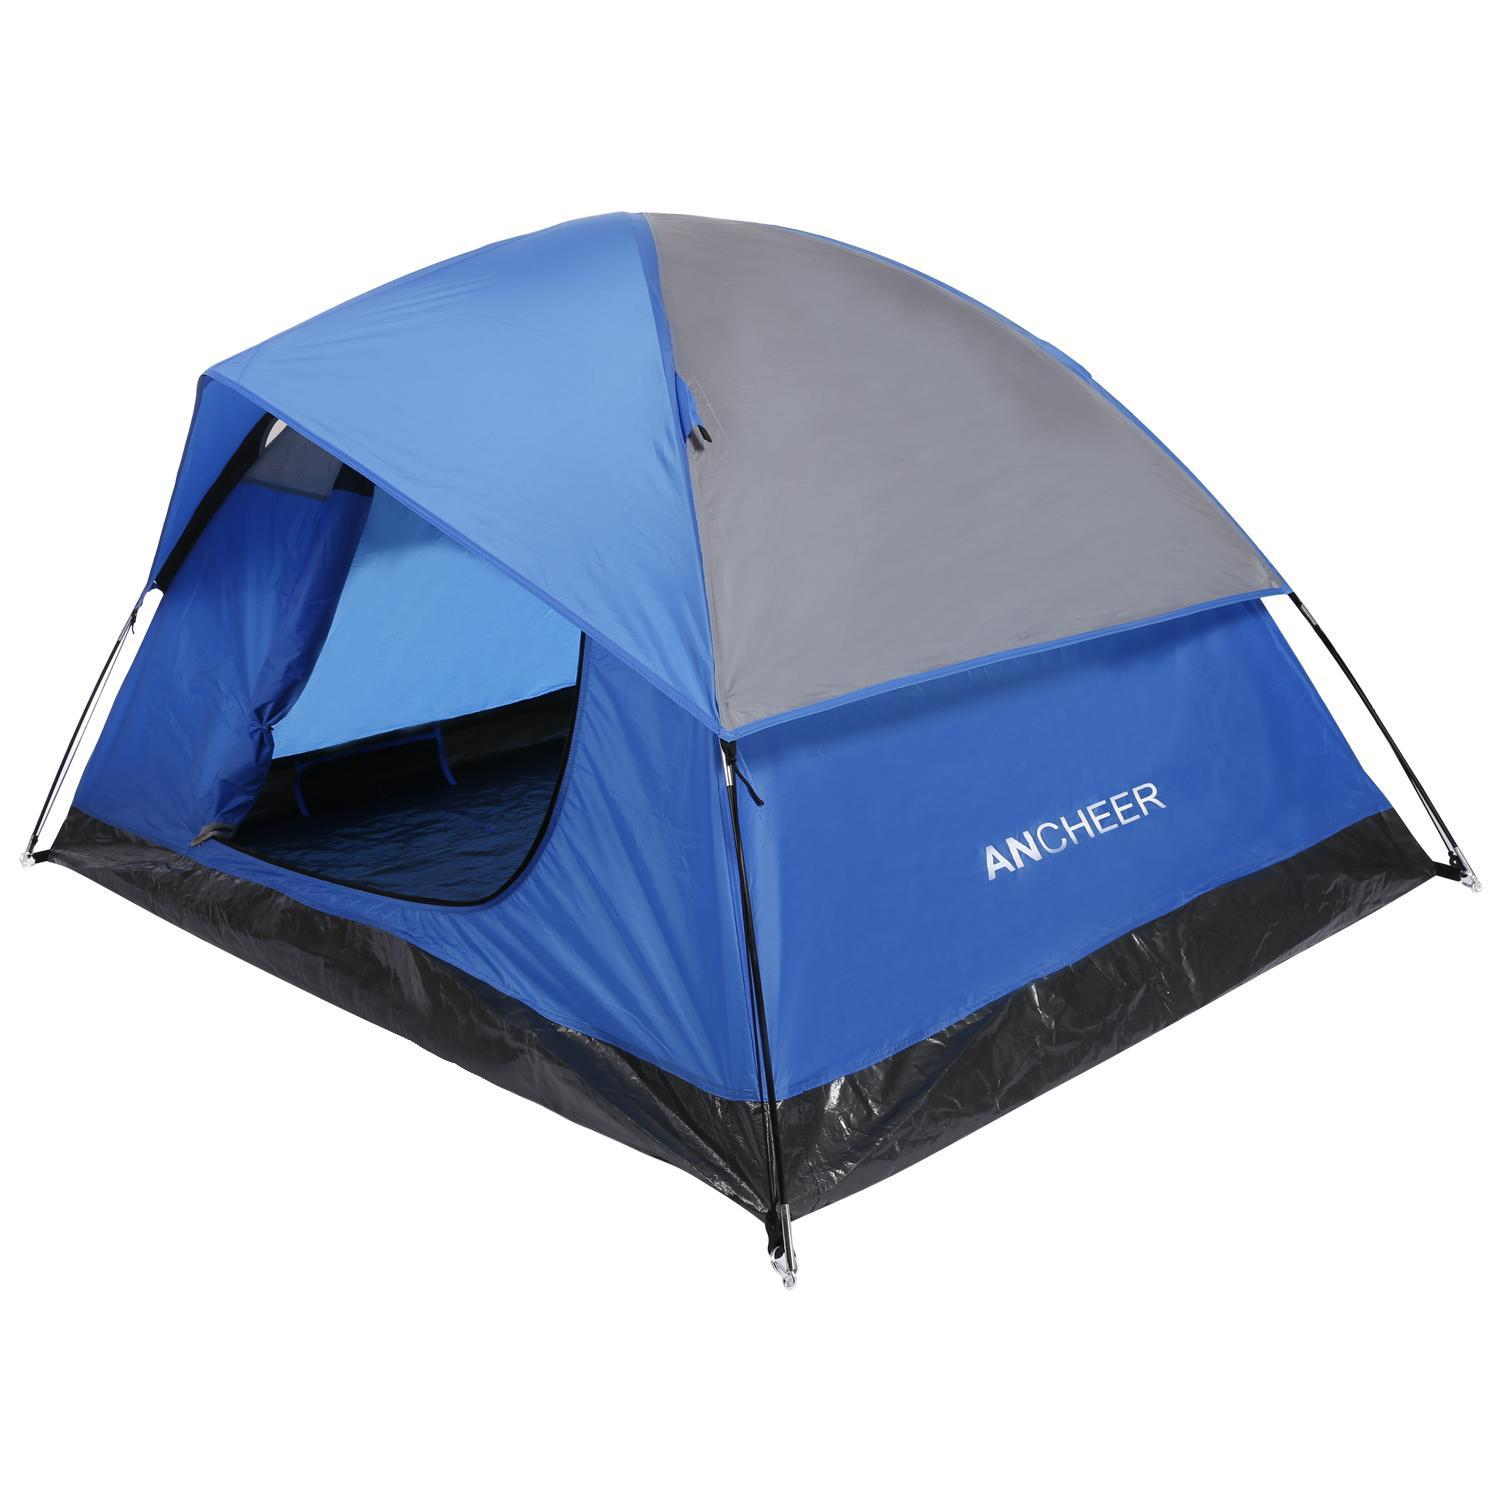 Big Saving for 1-2 Person 4 Seasons Double Layer Backpacking Tent, Freestanding Waterproof Lightweight Family Tent for... by